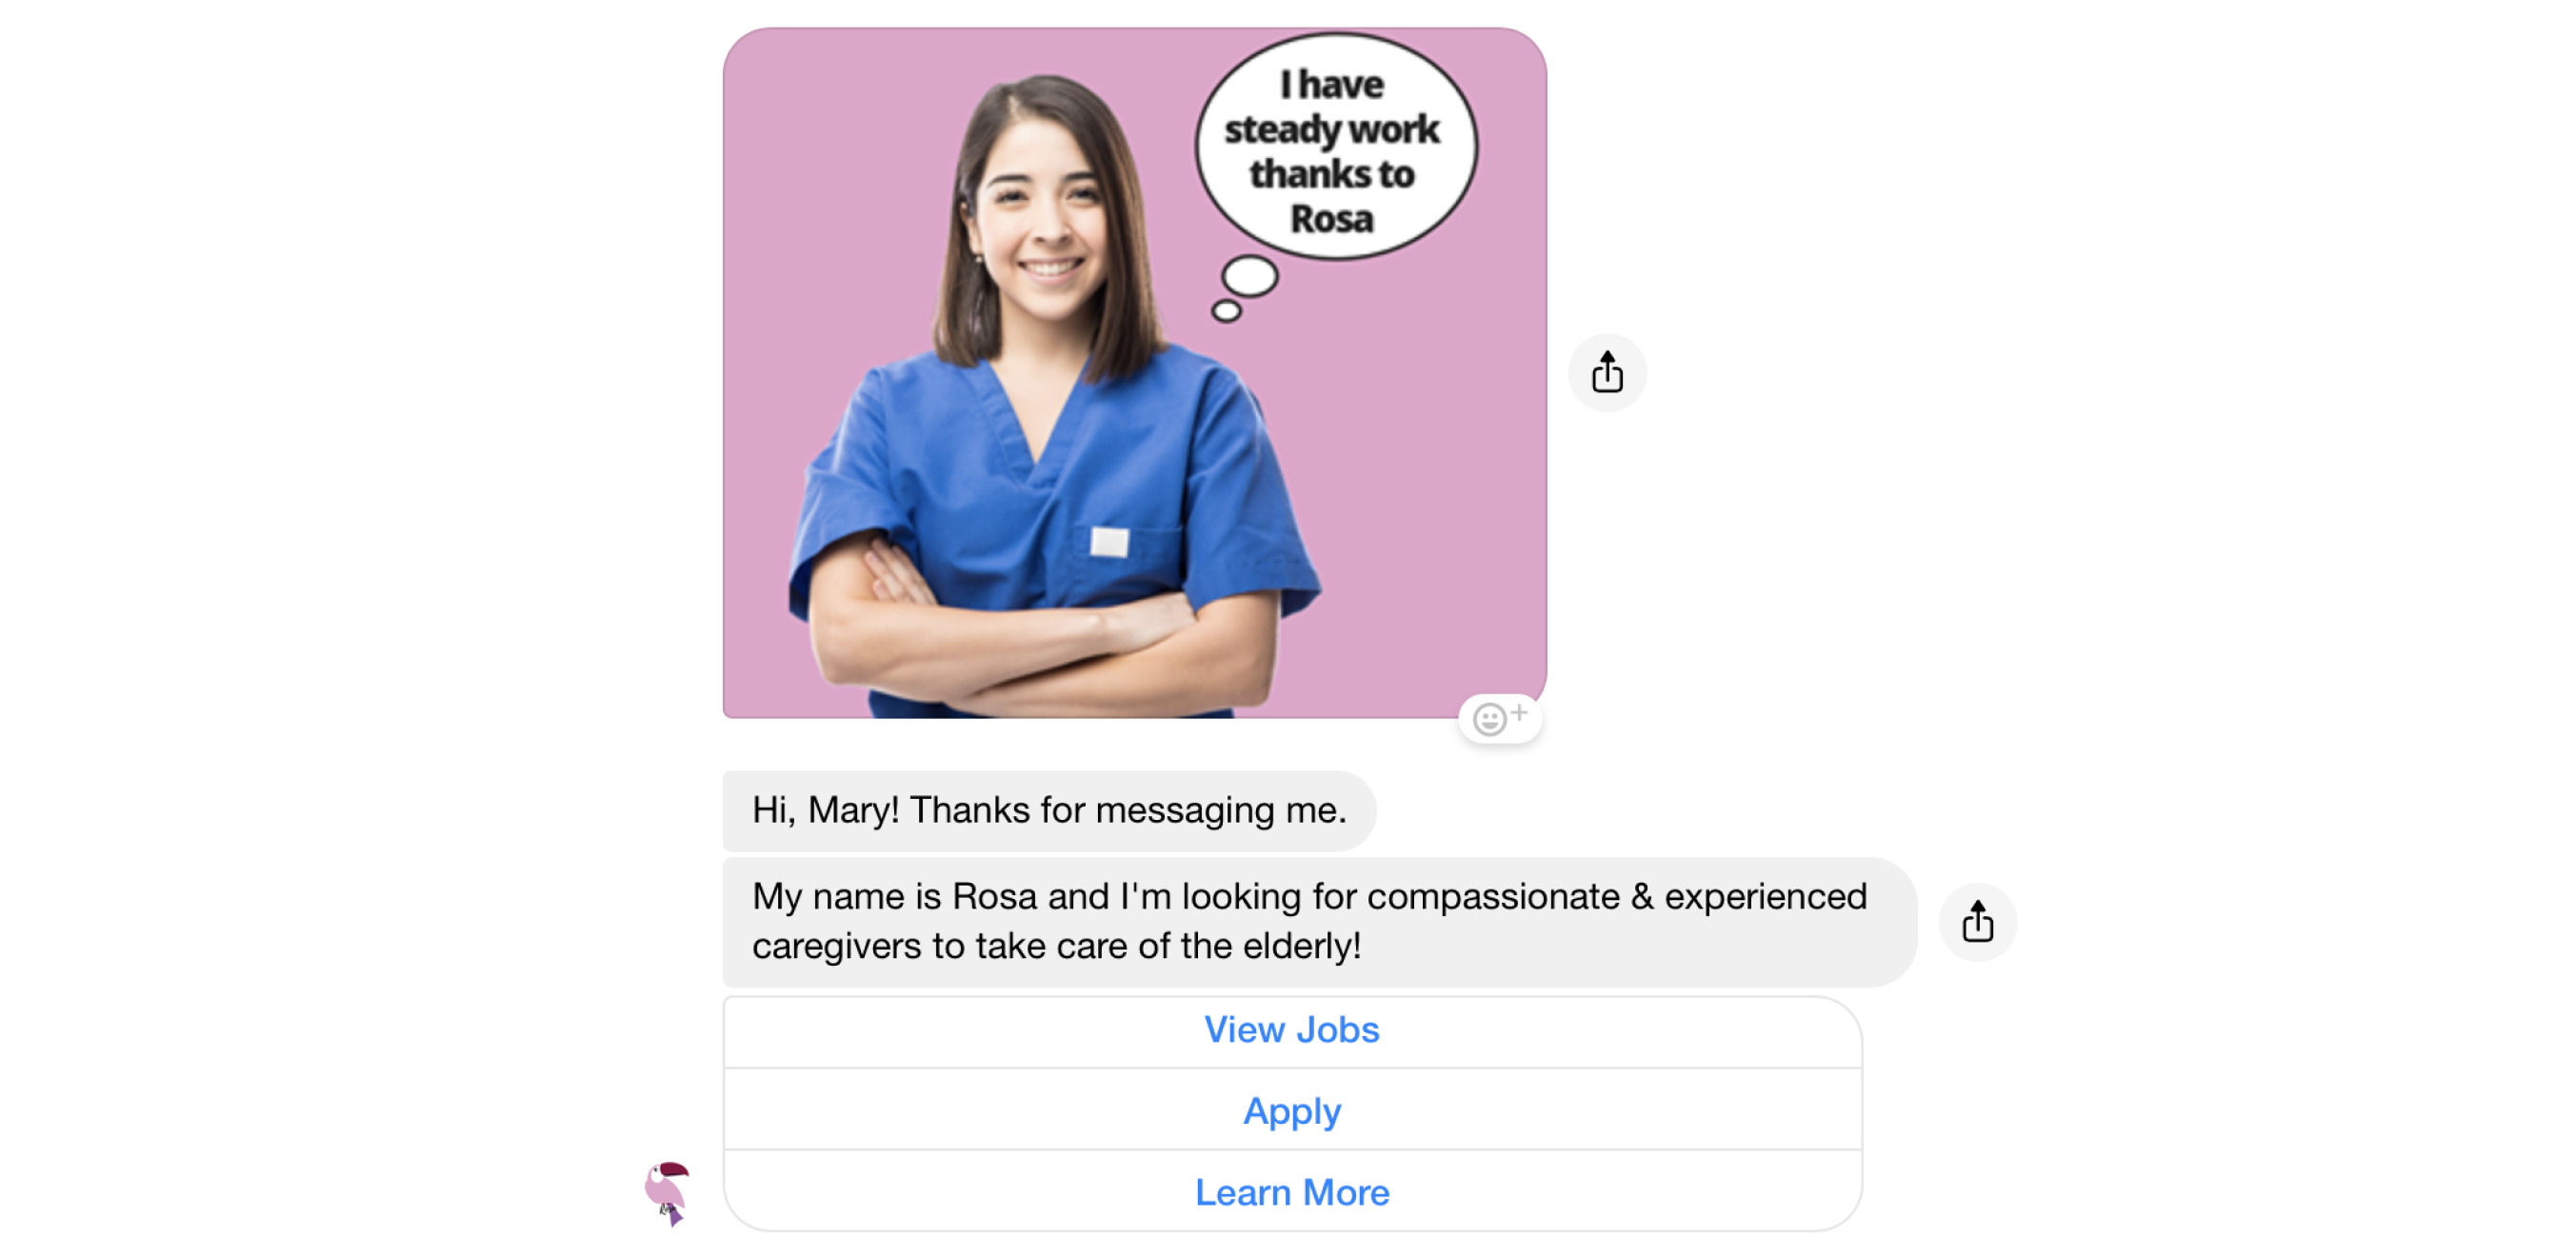 How to Use a Facebook Messenger Chatbot for Recruiting and HR